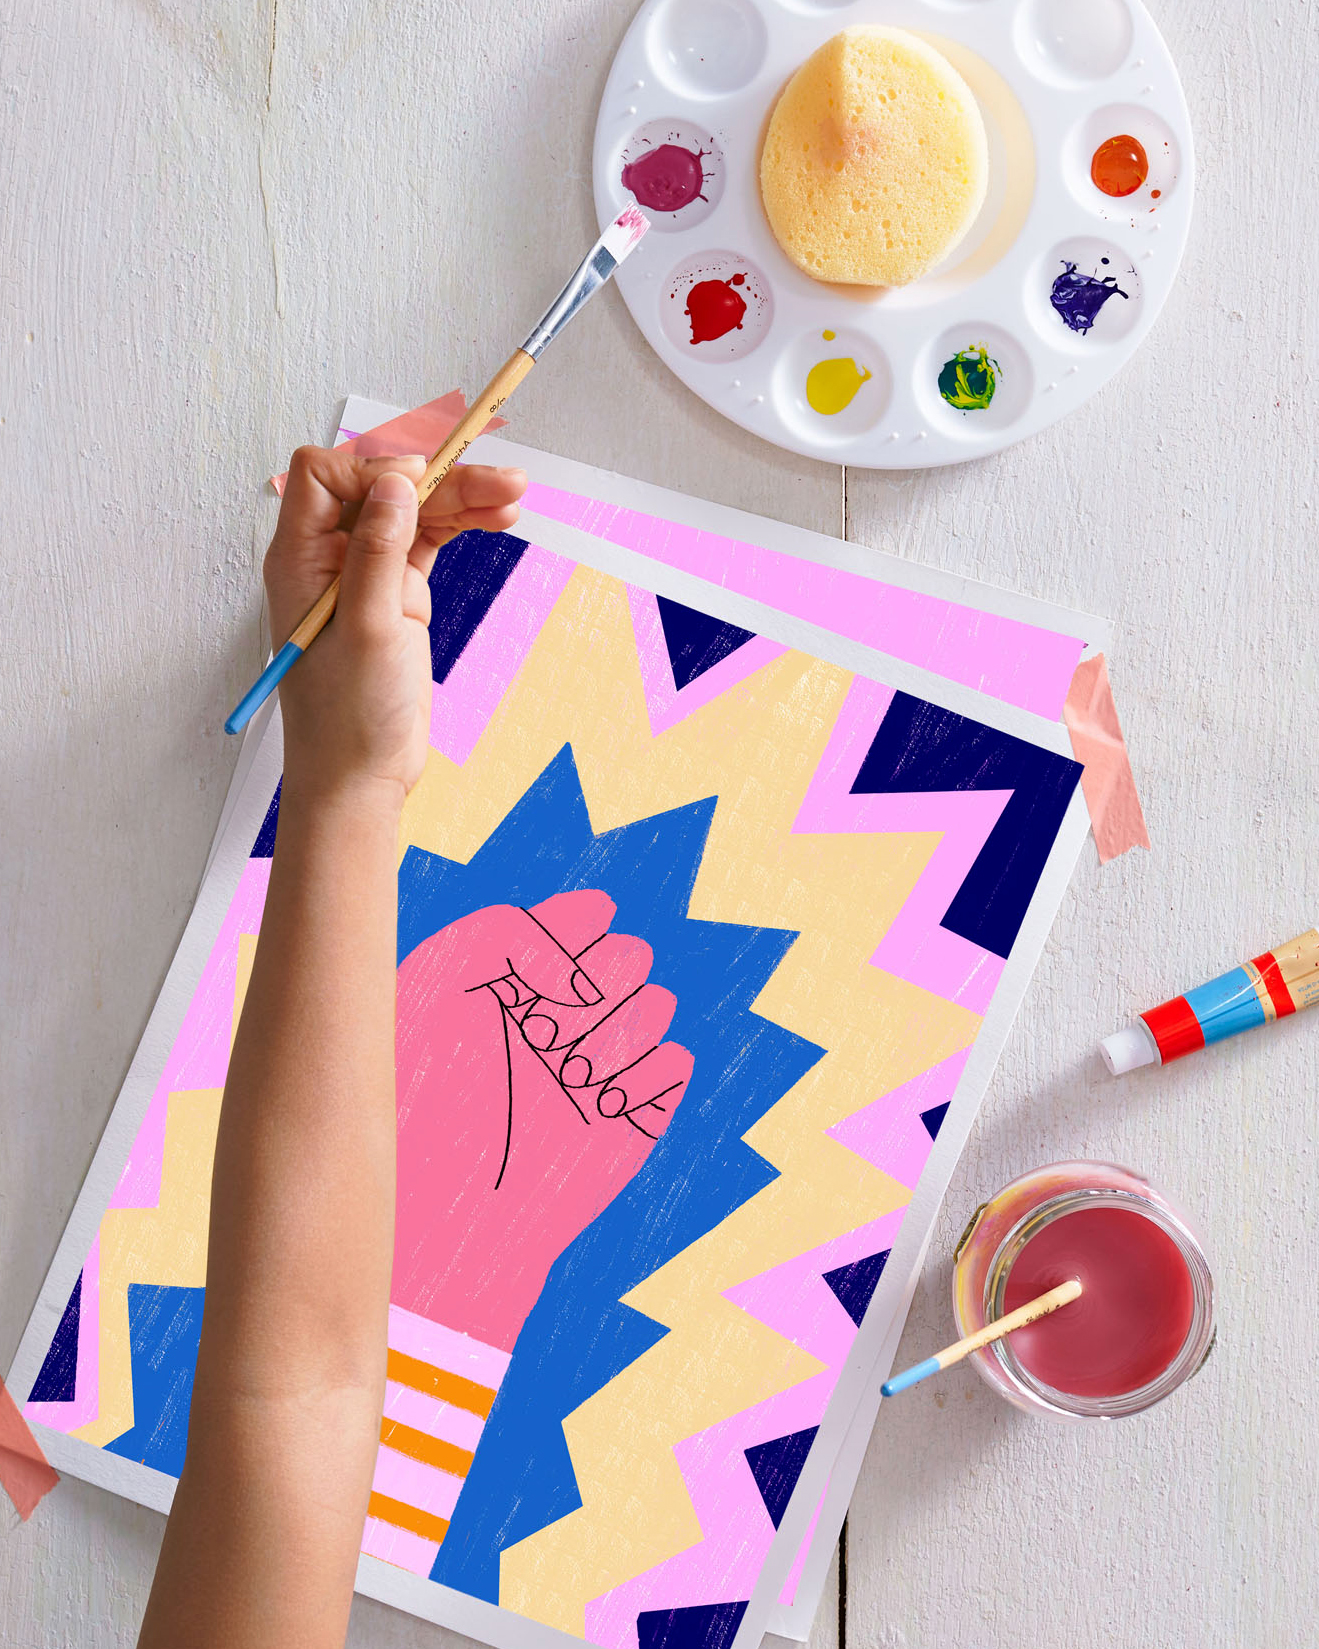 child painting colorful fist image with watercolors on pallet